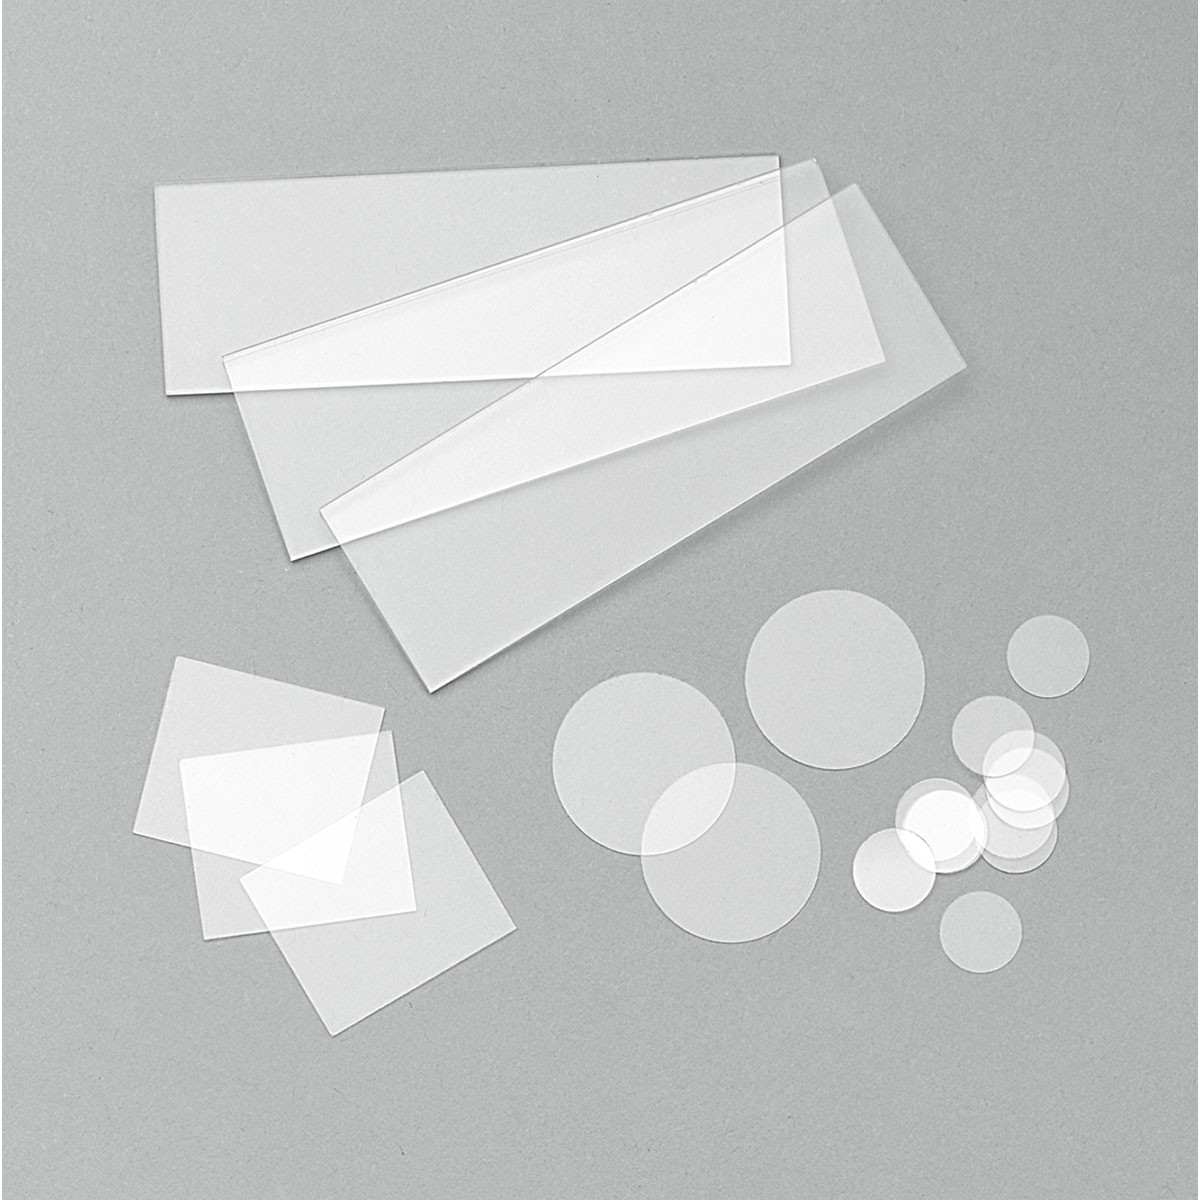 Microscope Slides 76x26mm, 1.0-1.2, twin frosted, cellophane sealed (50)